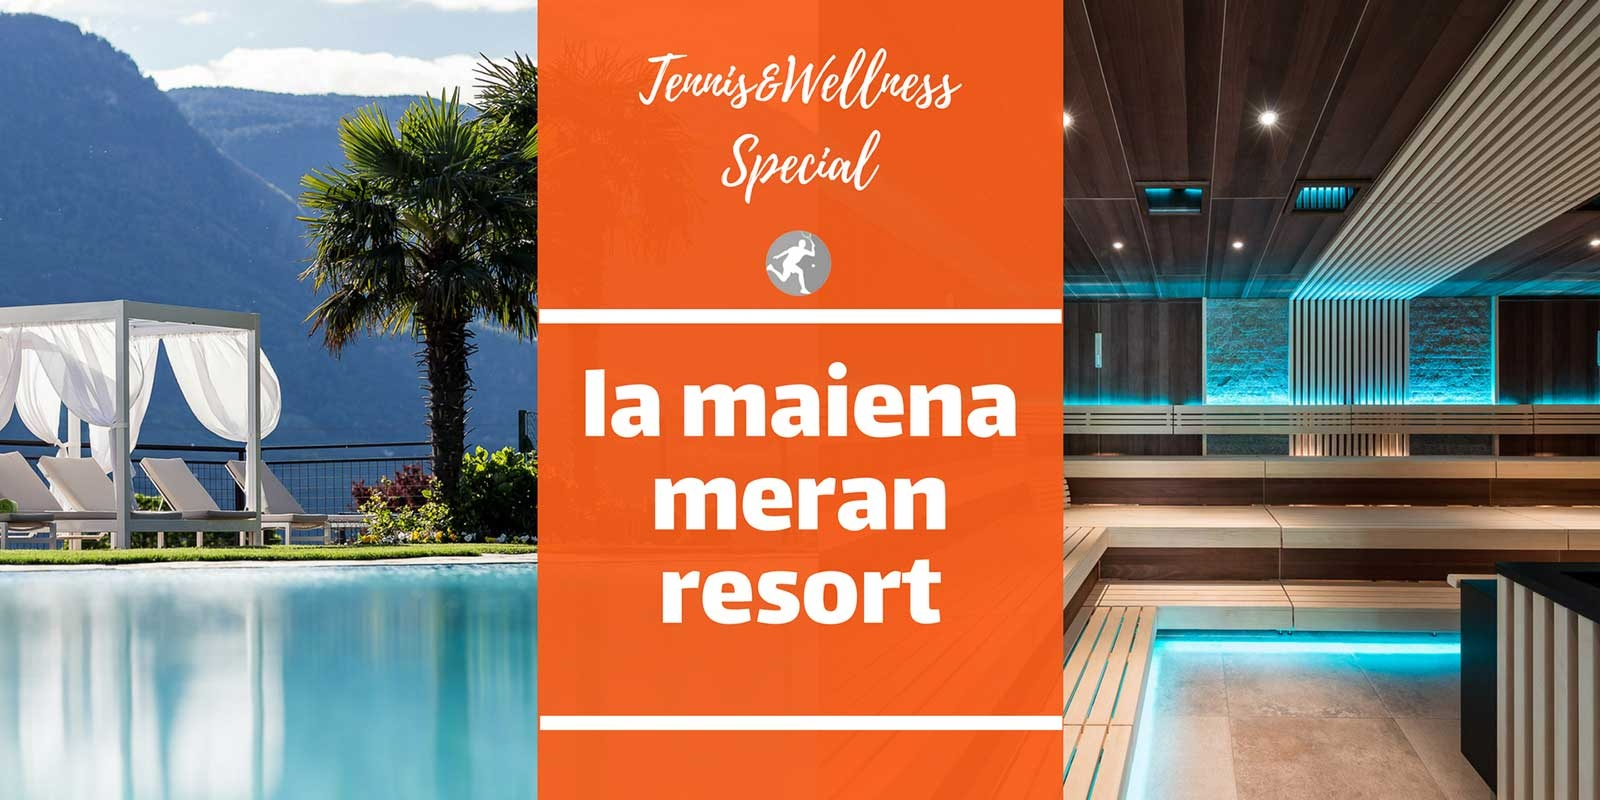 Tennis & Wellness im la maiena meran resort Bild 1